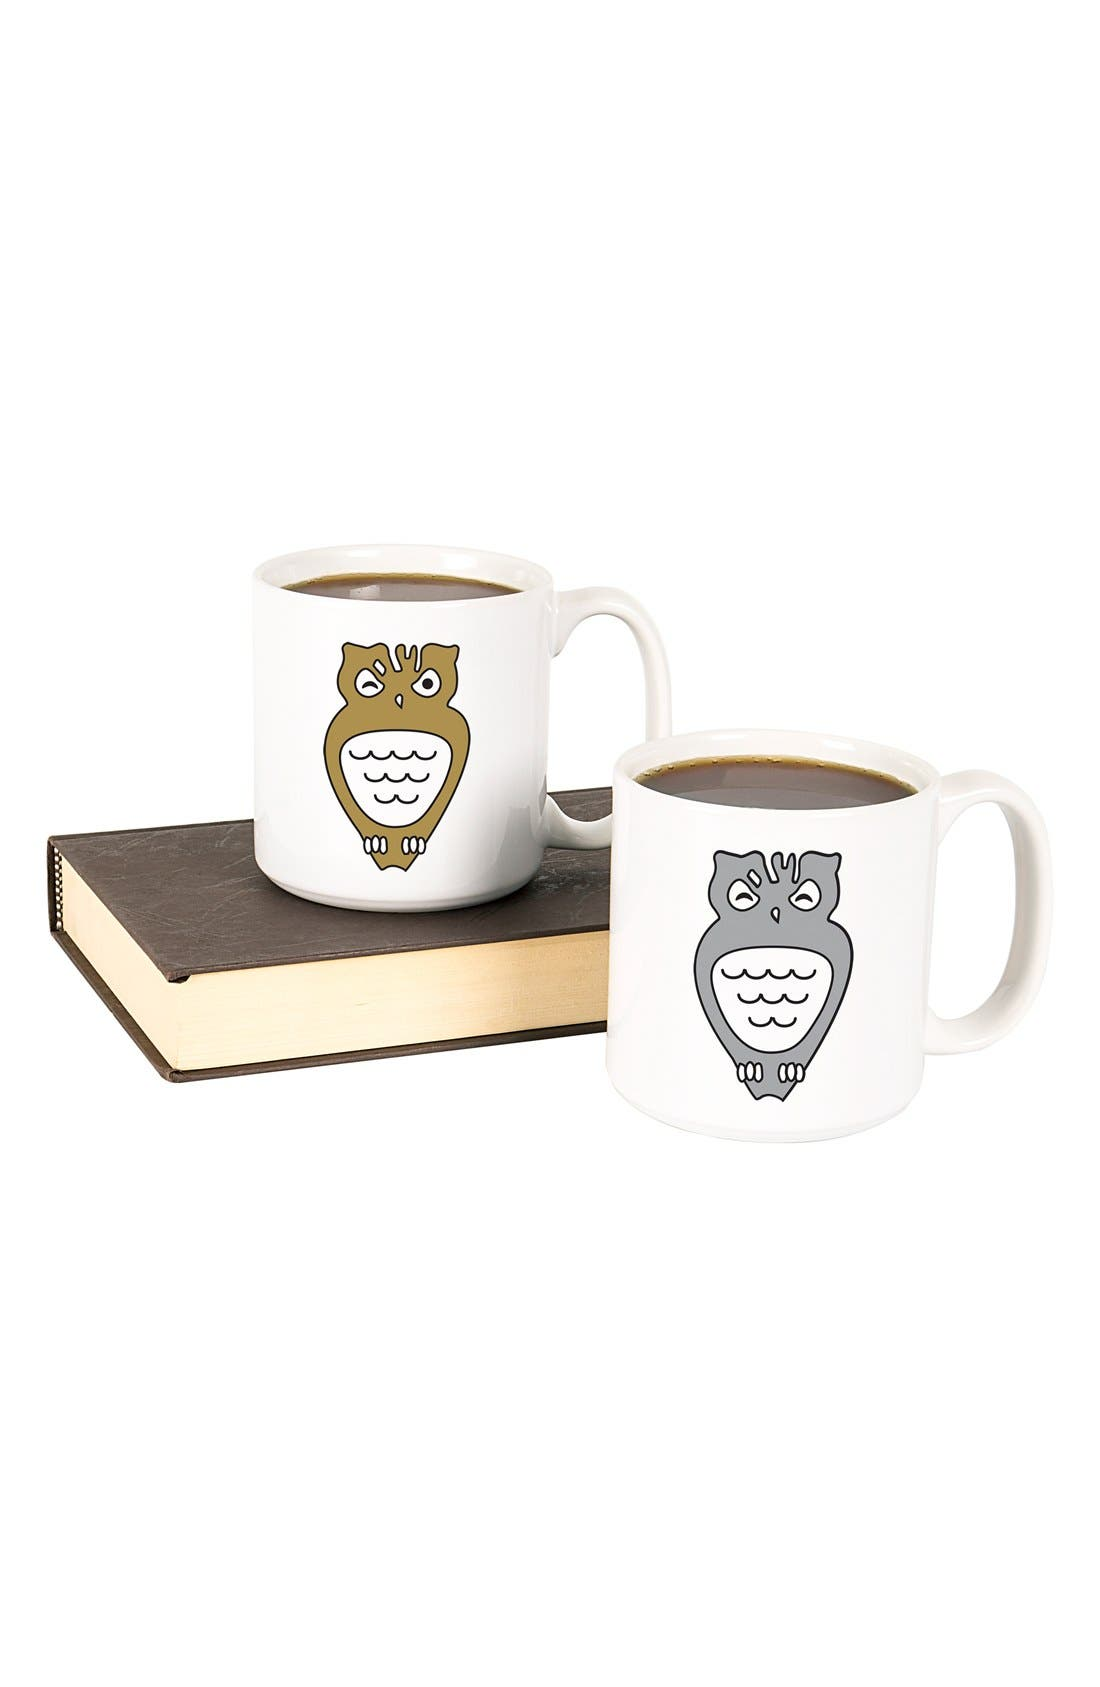 Alternate Image 1 Selected - Cathy's Concepts 'Owl' Ceramic Coffee Mugs (Set of 2)